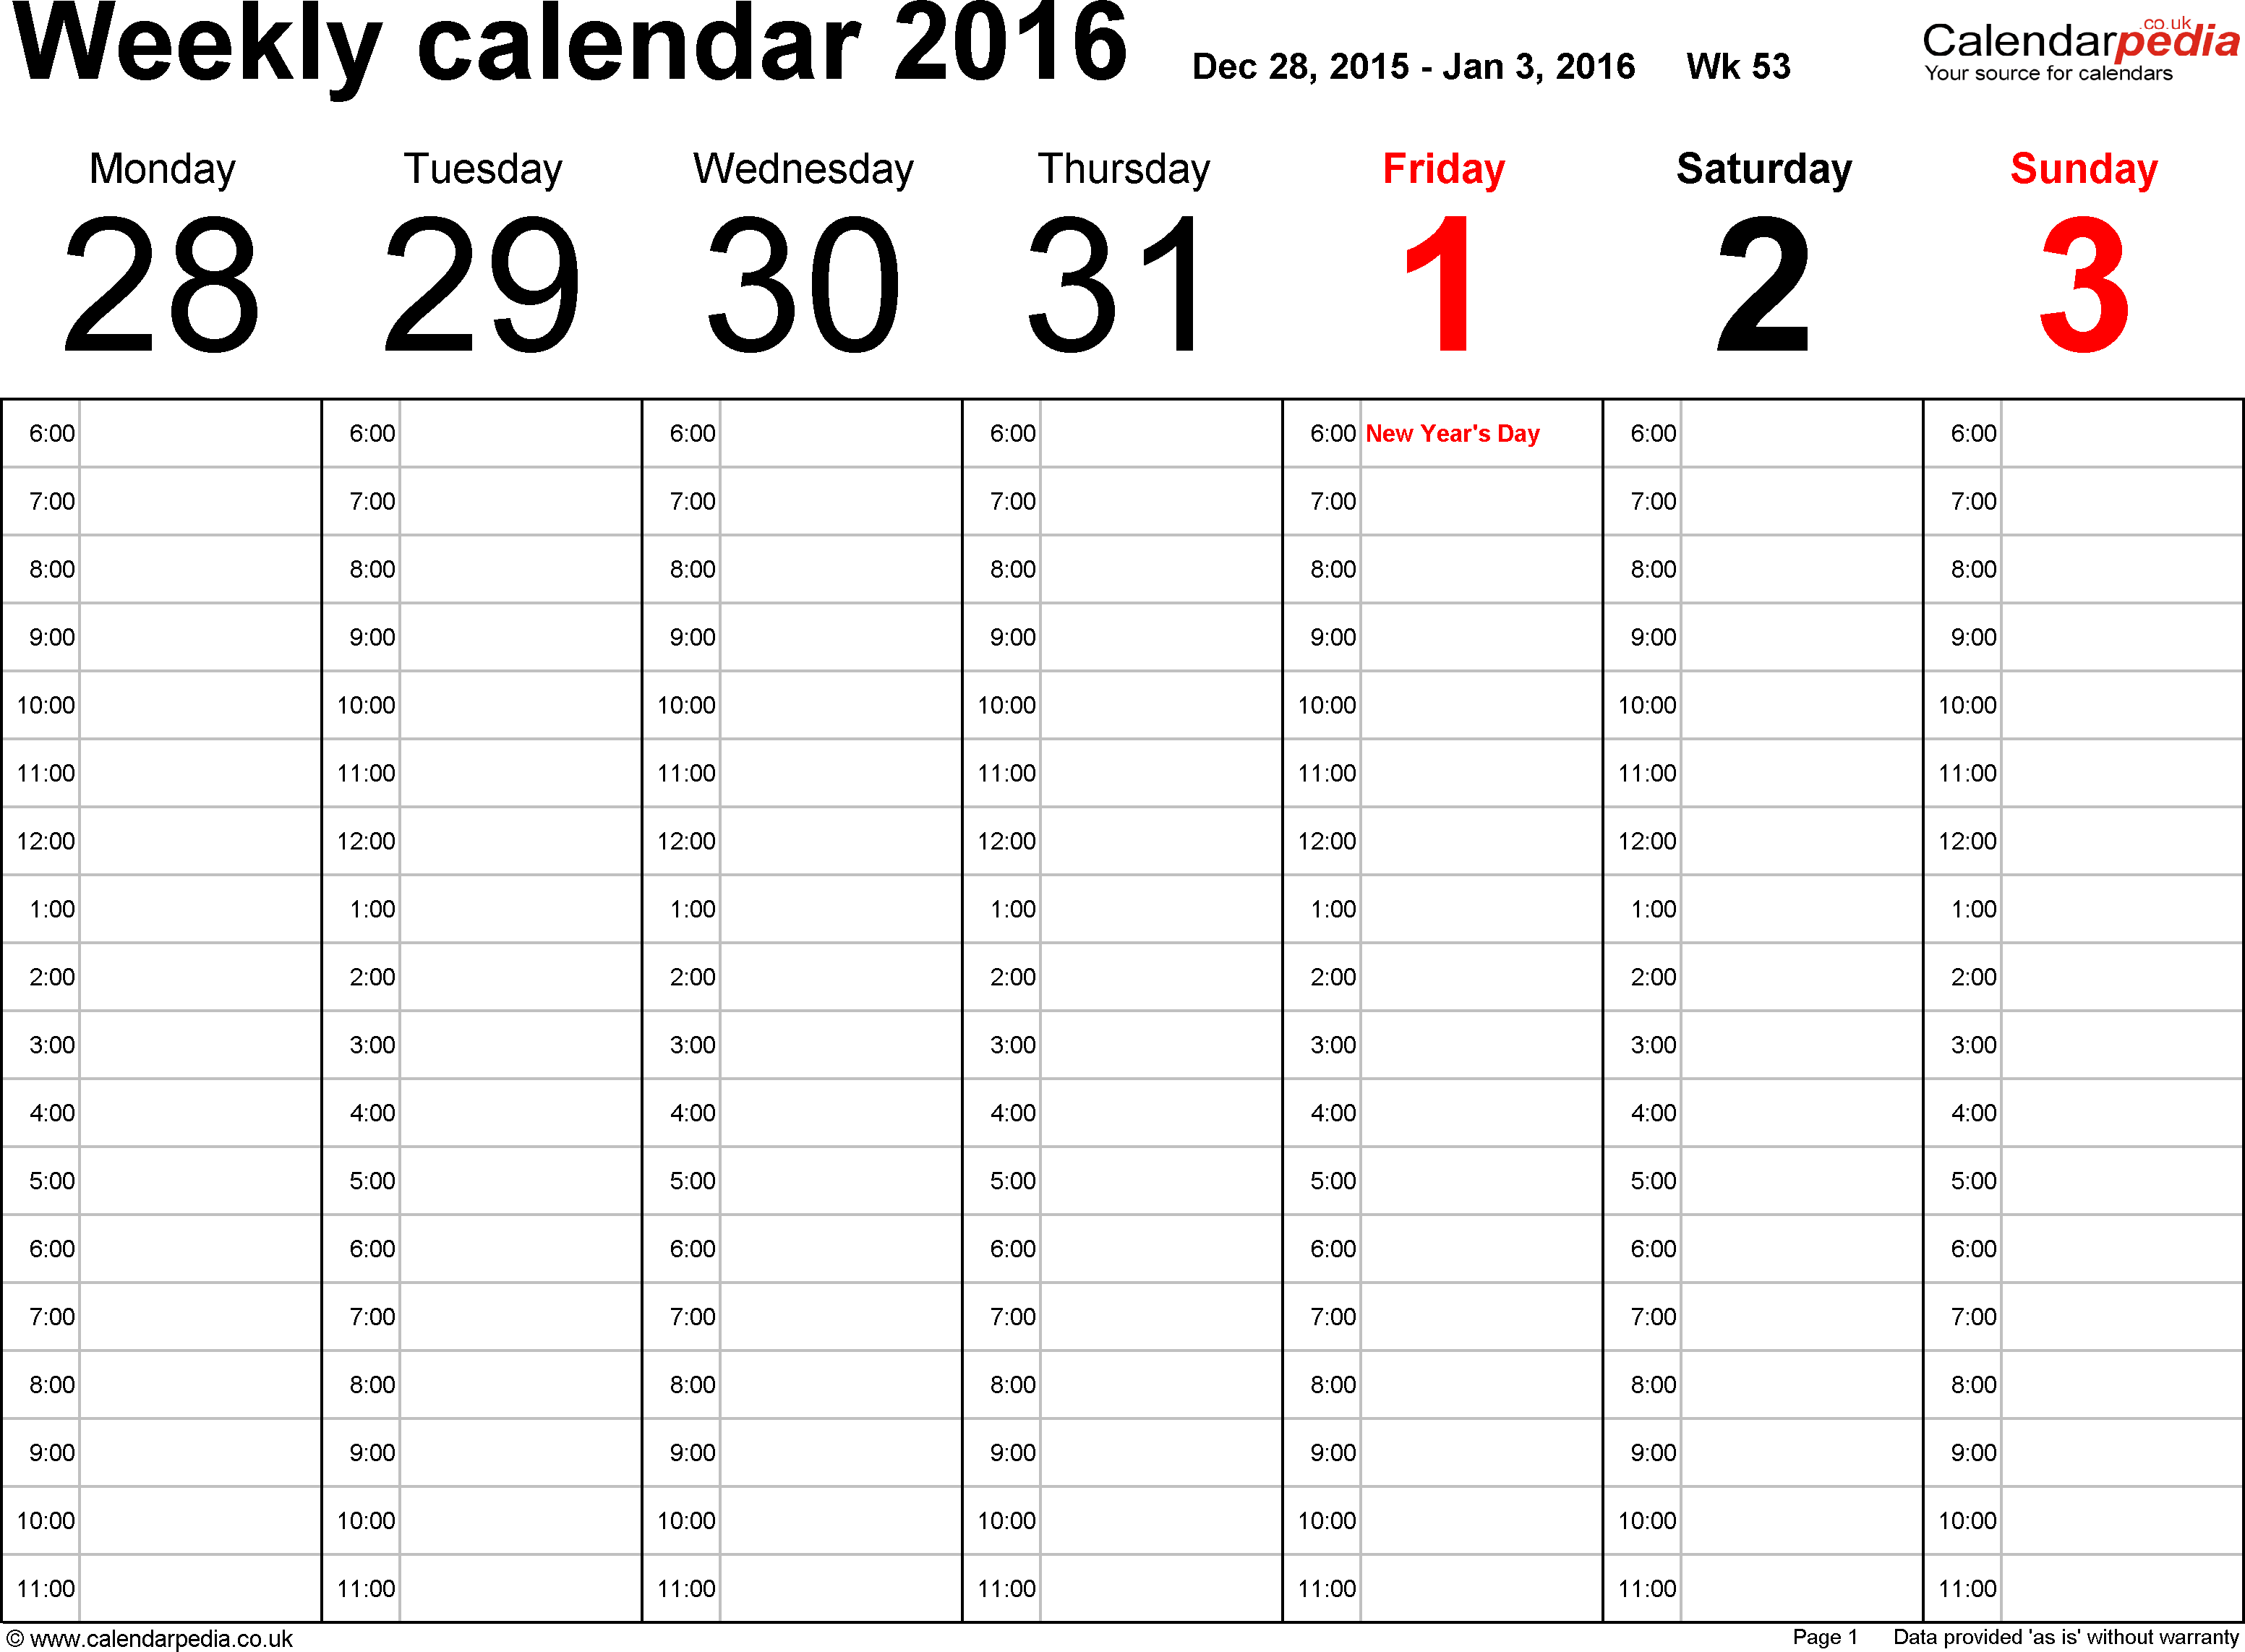 Weekly Calendar Template Without Time Slots | Calendar Template 2016